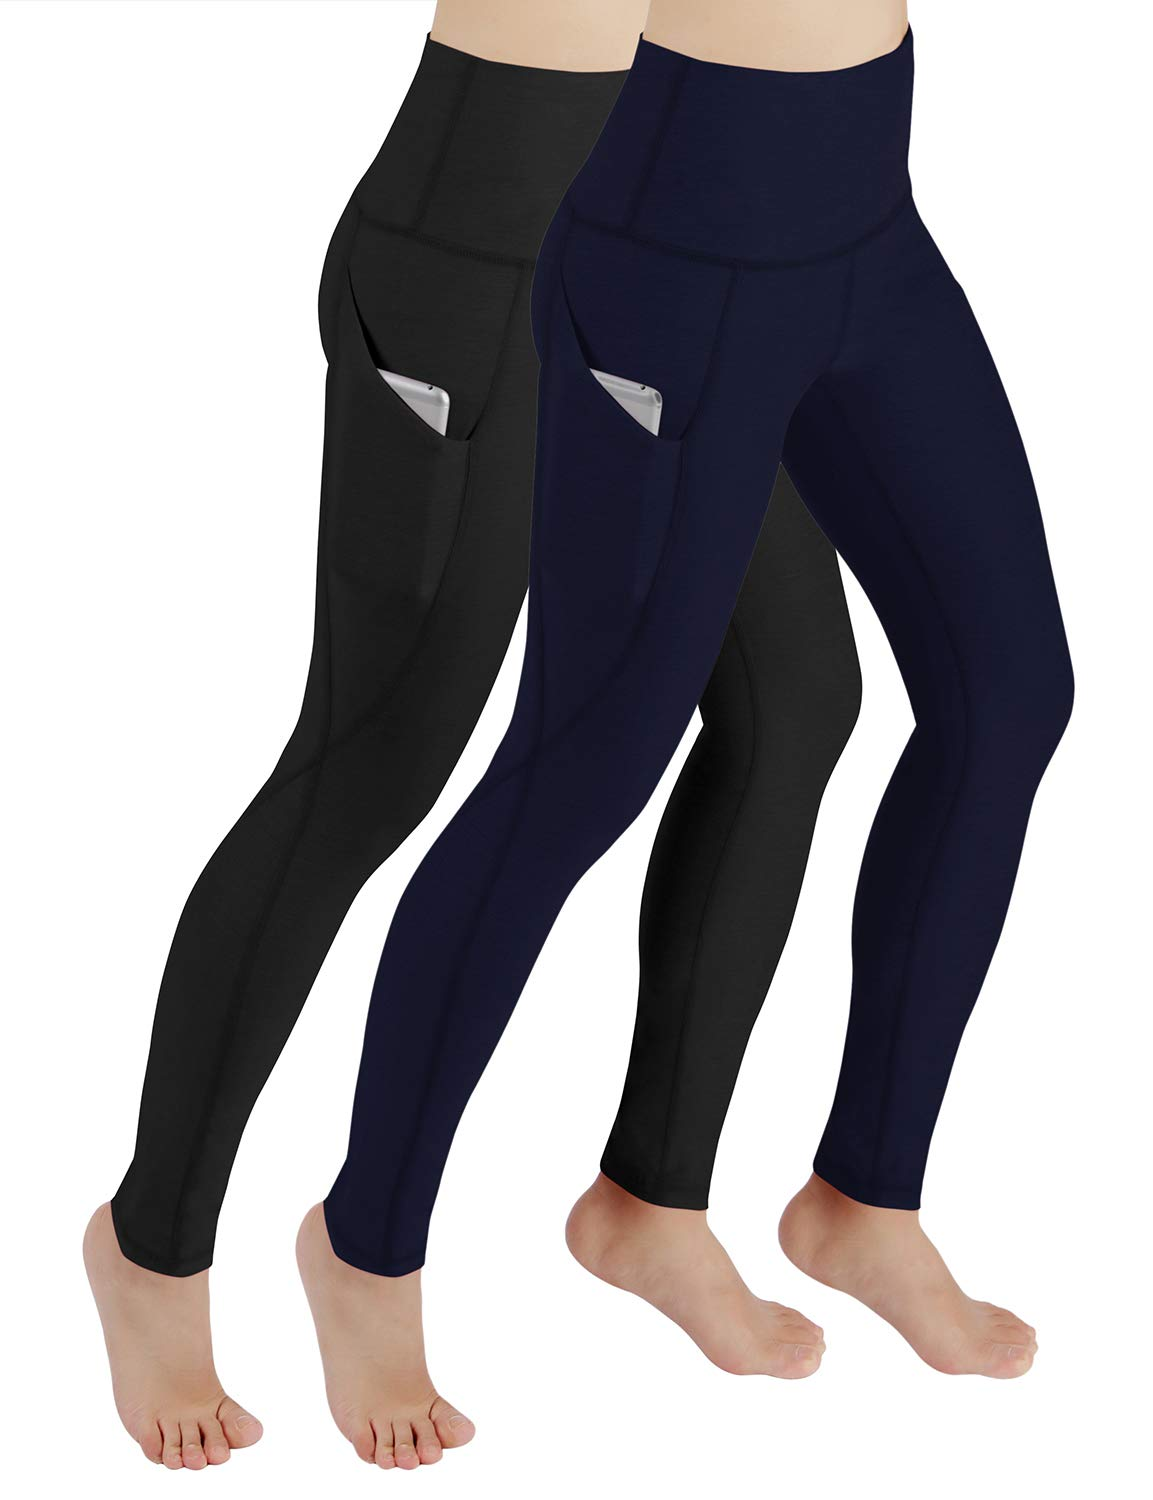 ODODOS Women's High Waist Yoga Pants with Pockets,Tummy Control,Workout Pants Running 4 Way Stretch Yoga Leggings with Pockets,BlackNavy2Pack,X-Small by ODODOS